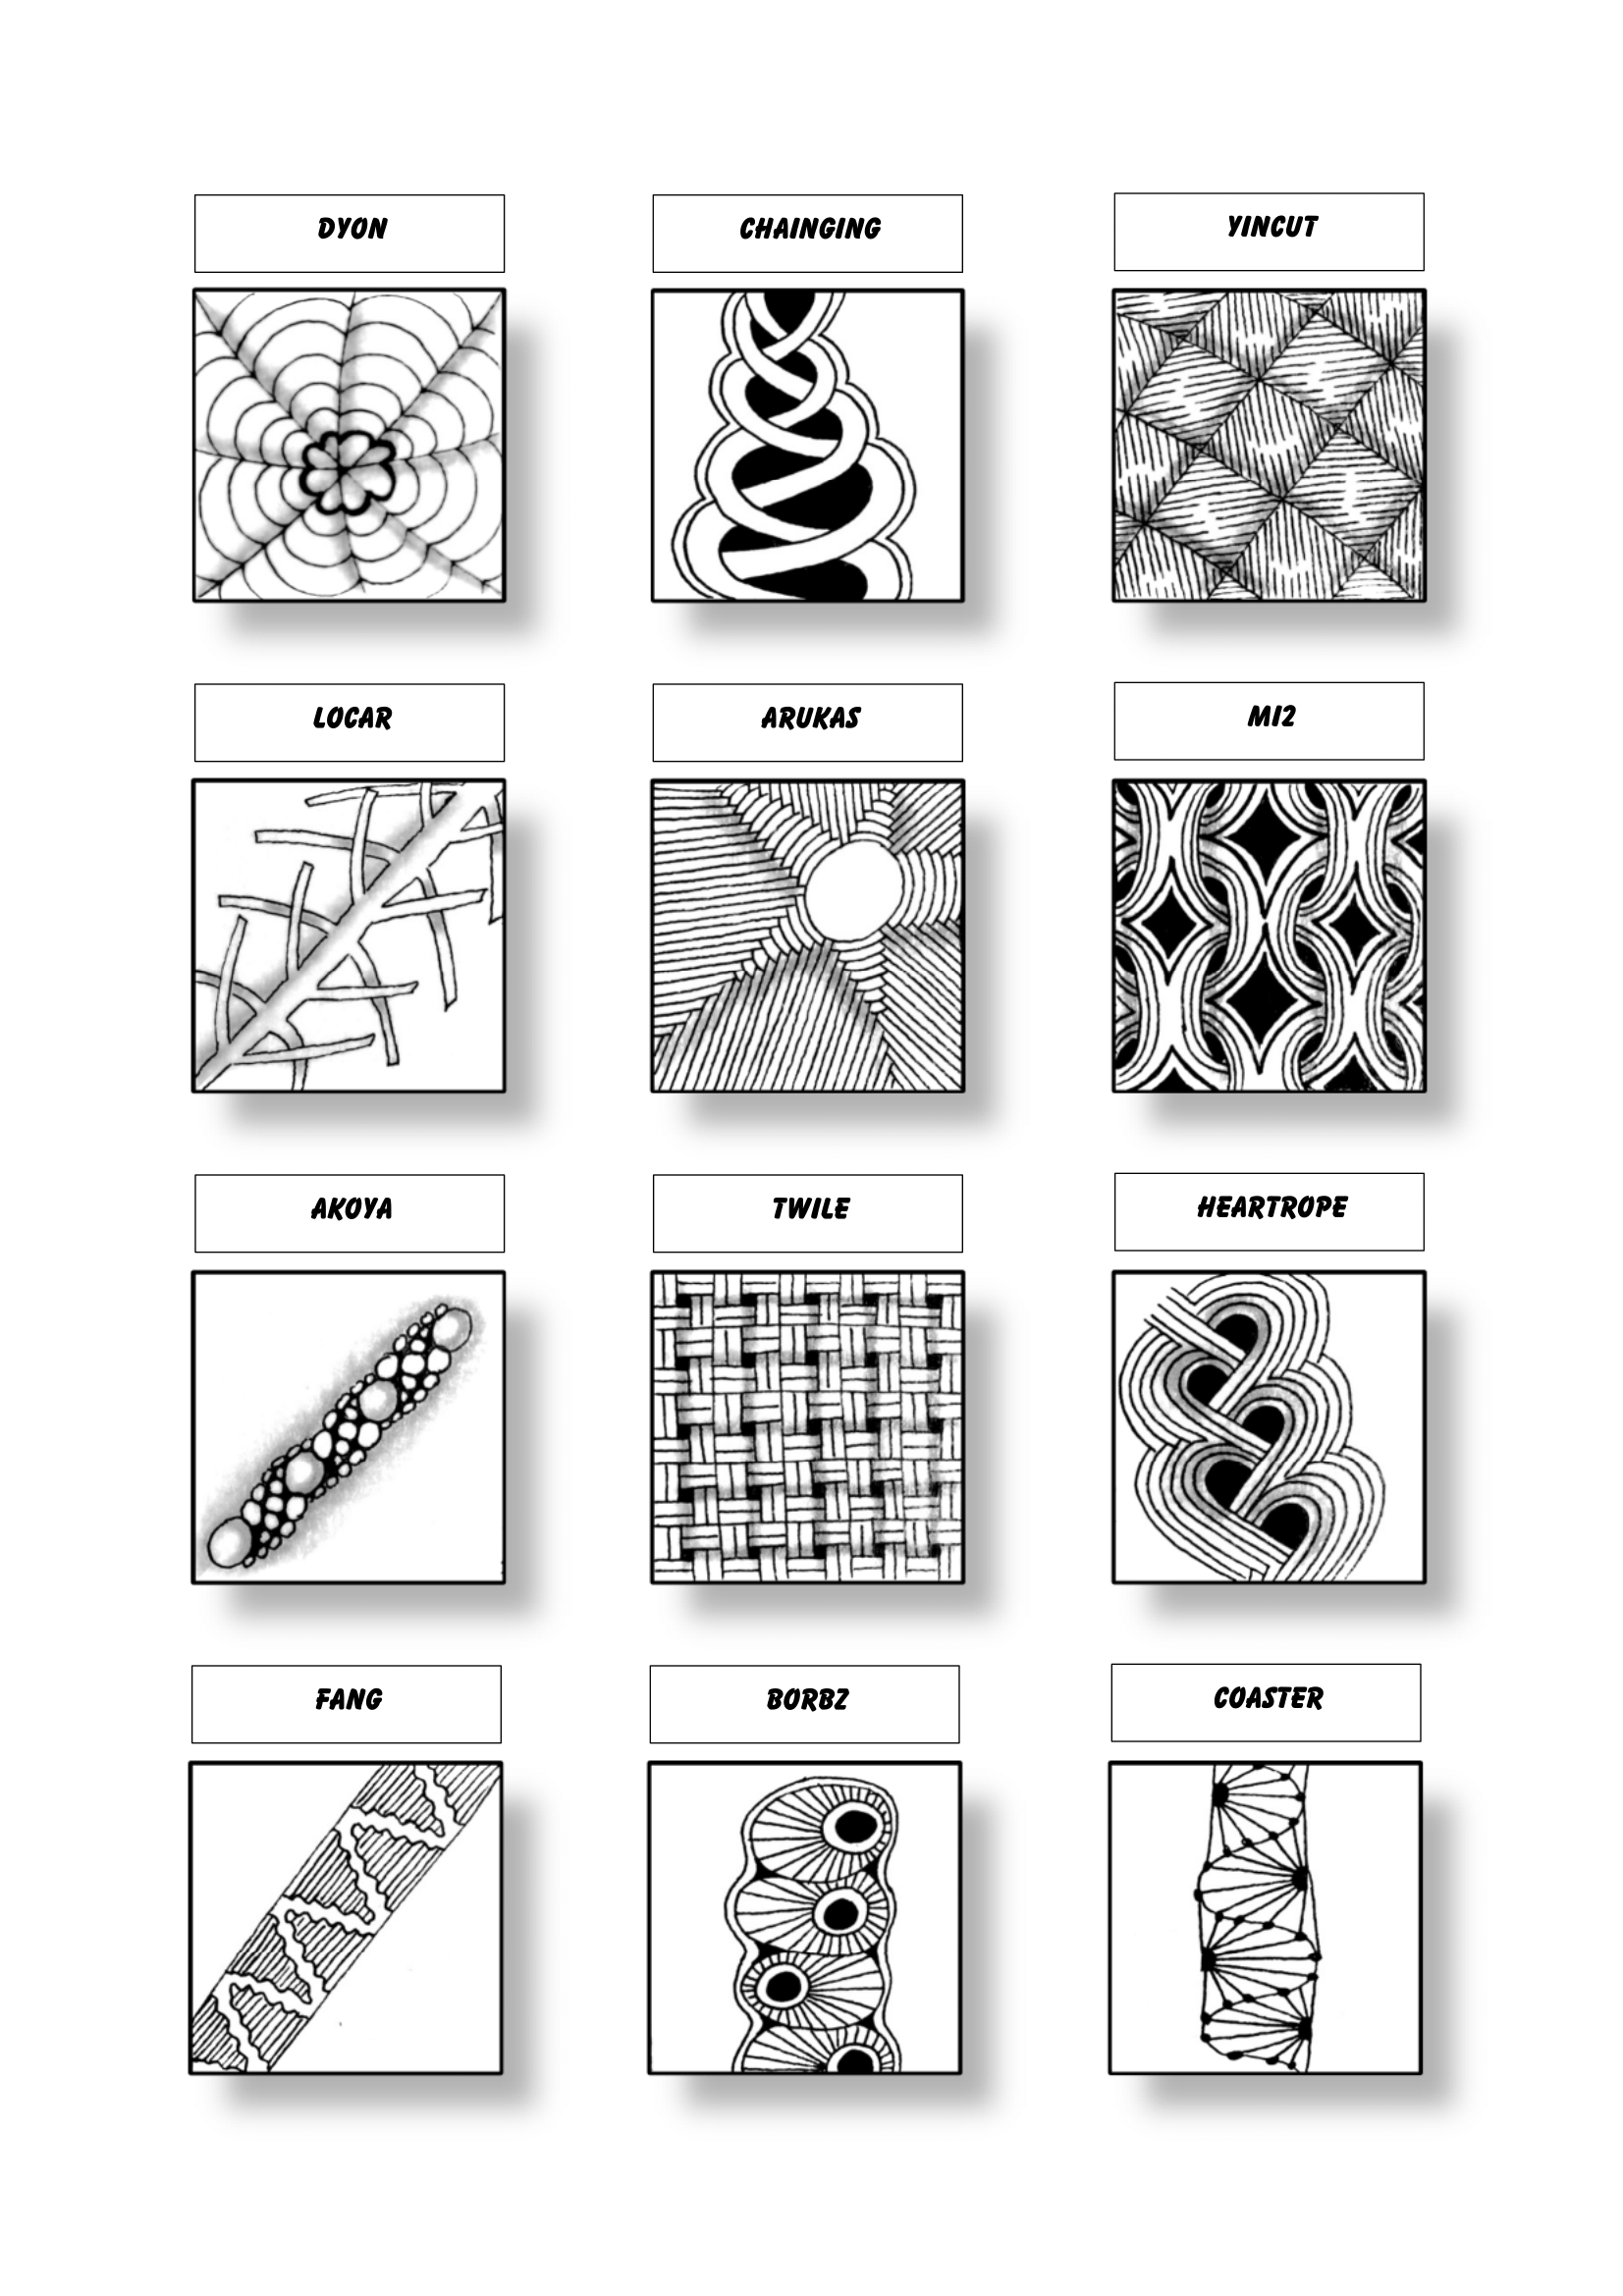 Zentangle Pattern Sheet 17 Patterns Dyon Chainging